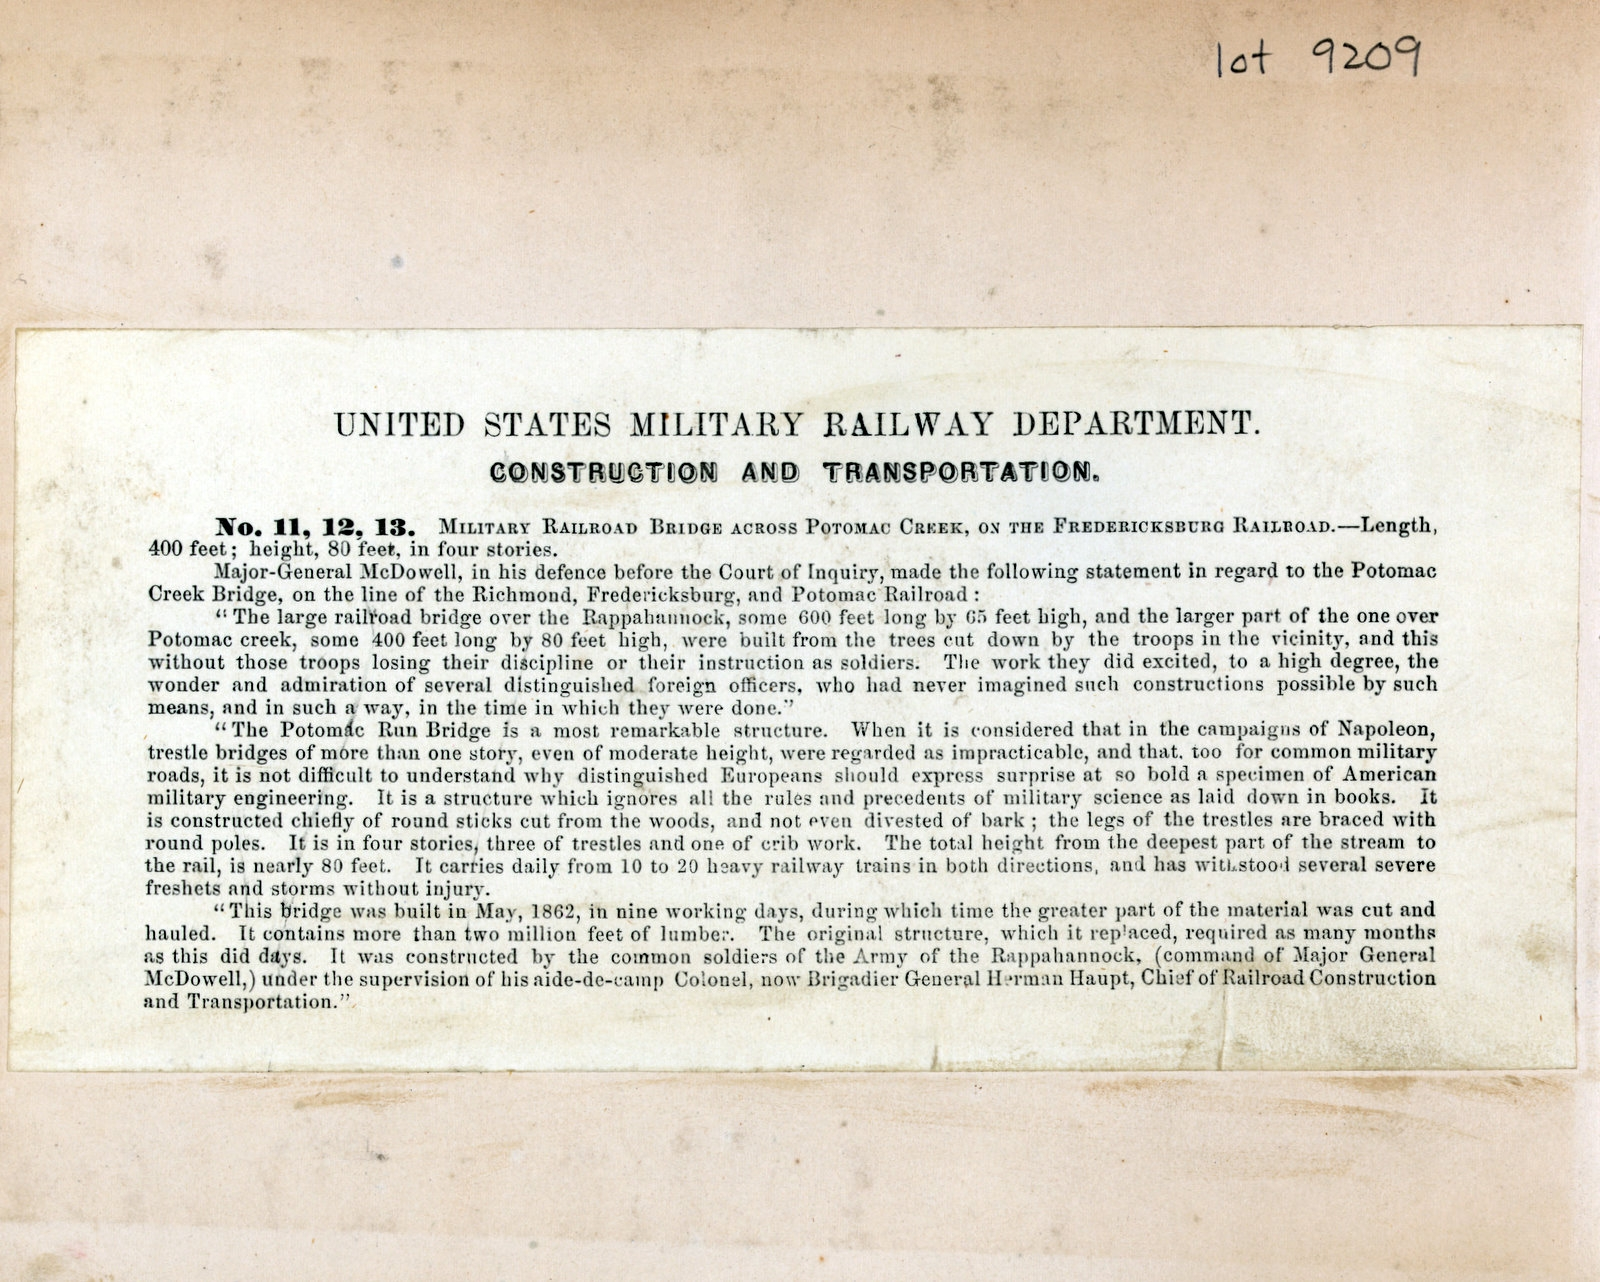 United States Military Railroad Department. Construction and Transportation.